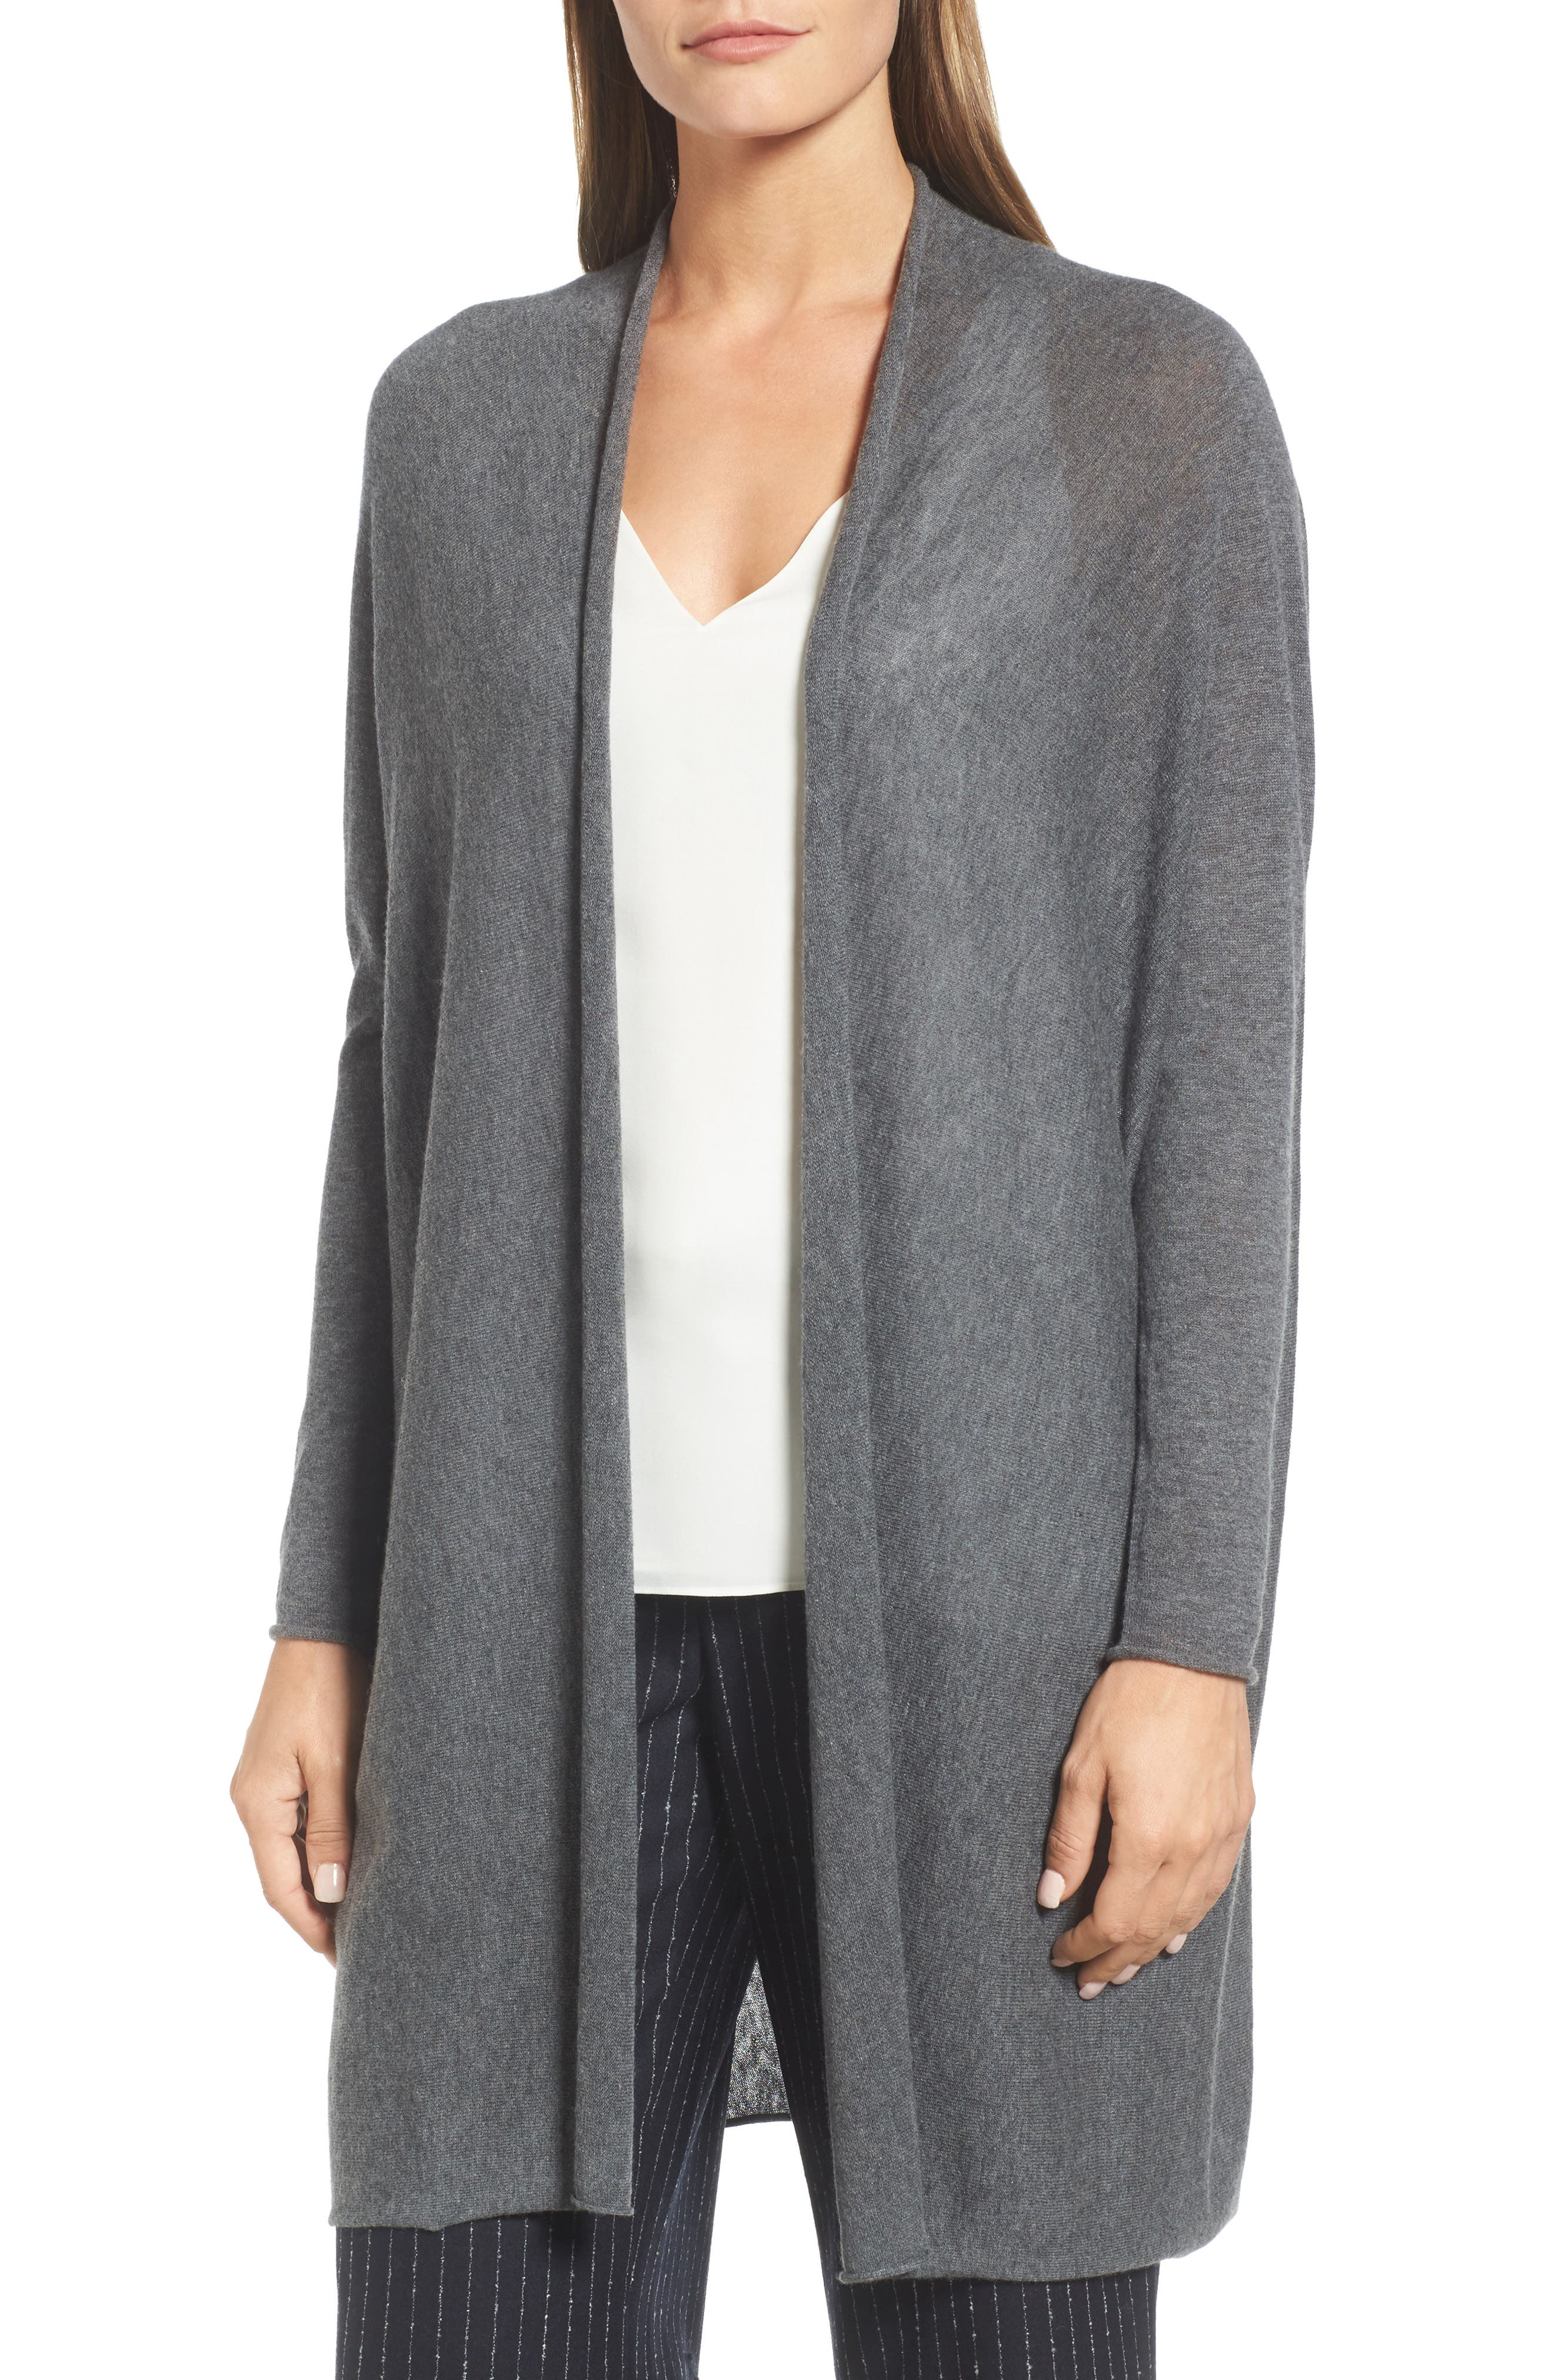 Nordstrom Signature Long Cardigan